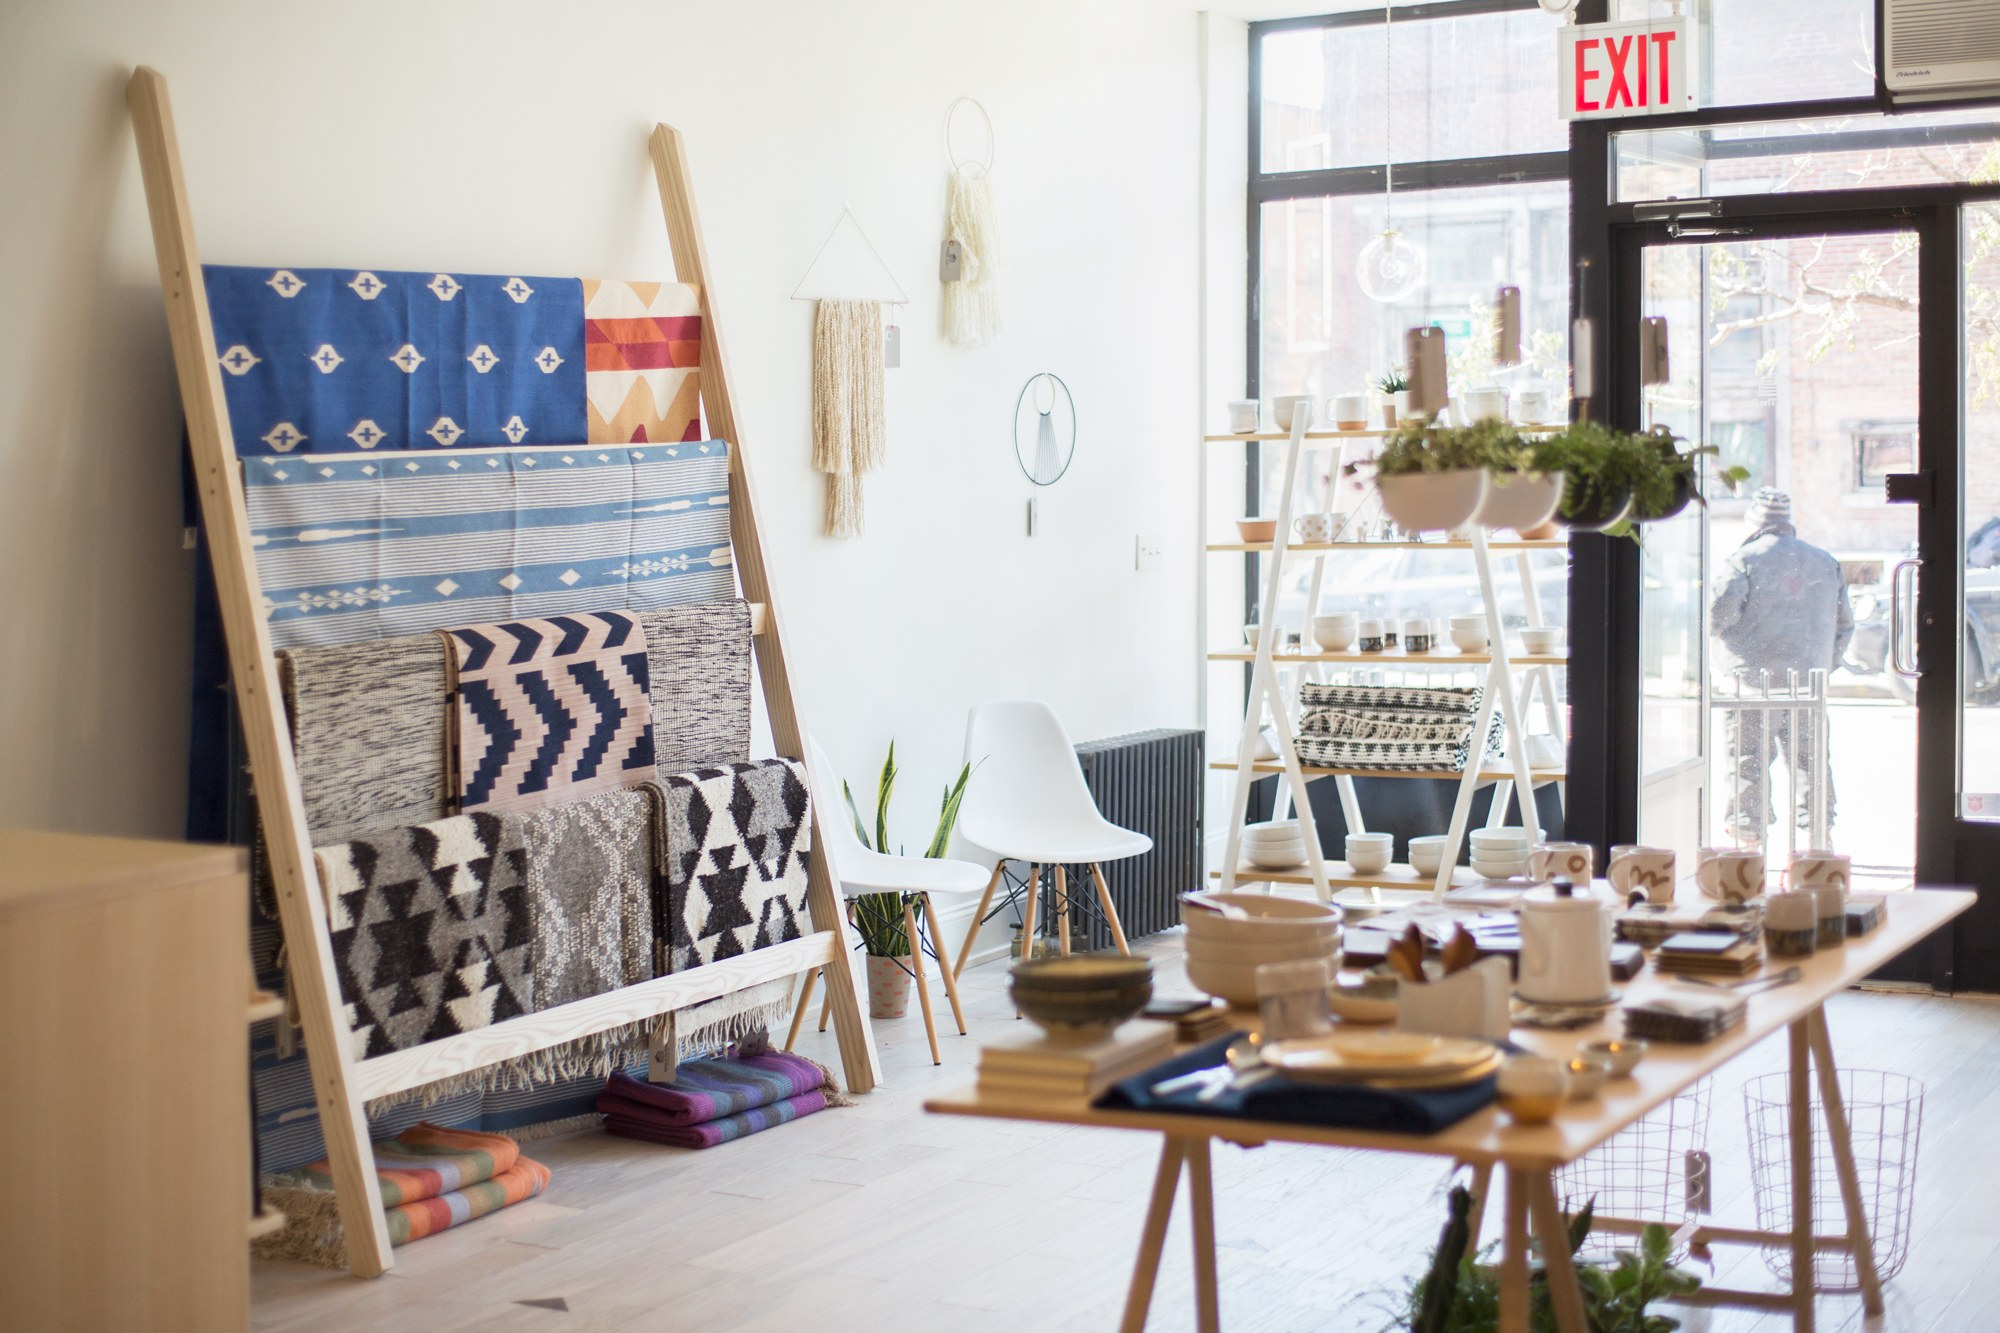 decor stores brooklyn shopping interior vogue website greenpoint business target market malaysia known facts elements needs marketing street five tips